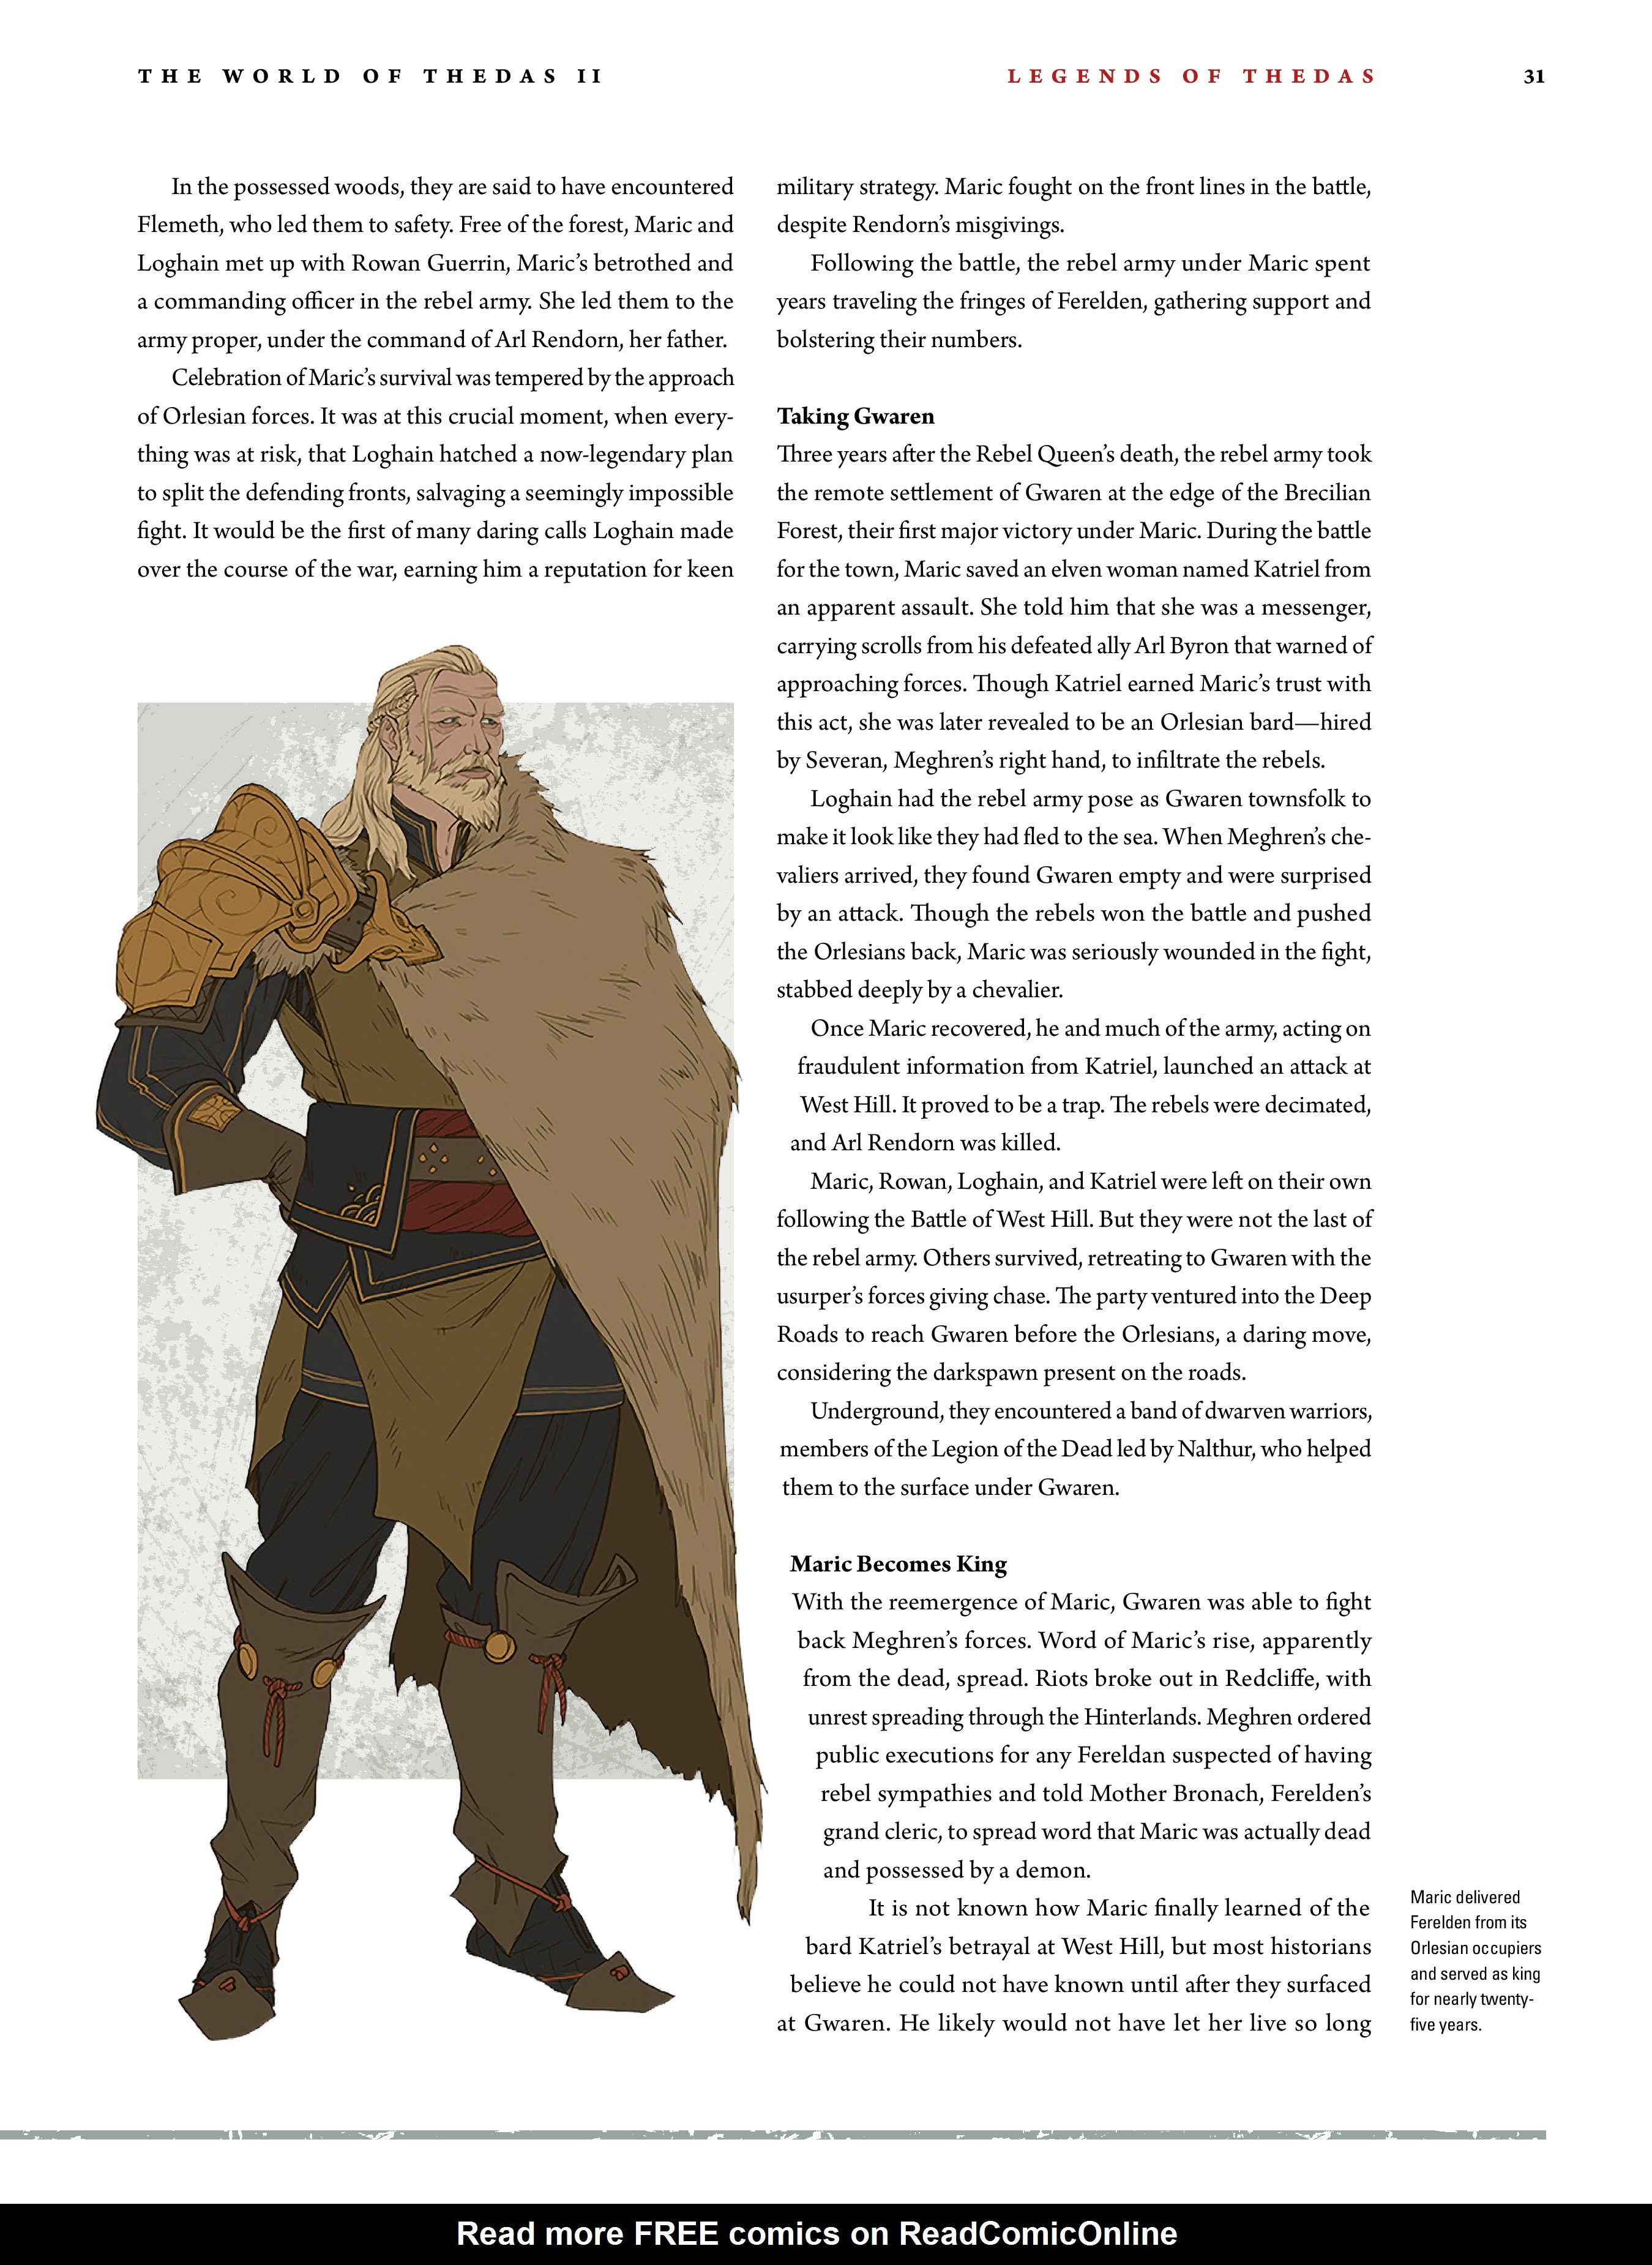 Read online Dragon Age: The World of Thedas comic -  Issue # TPB 2 - 28